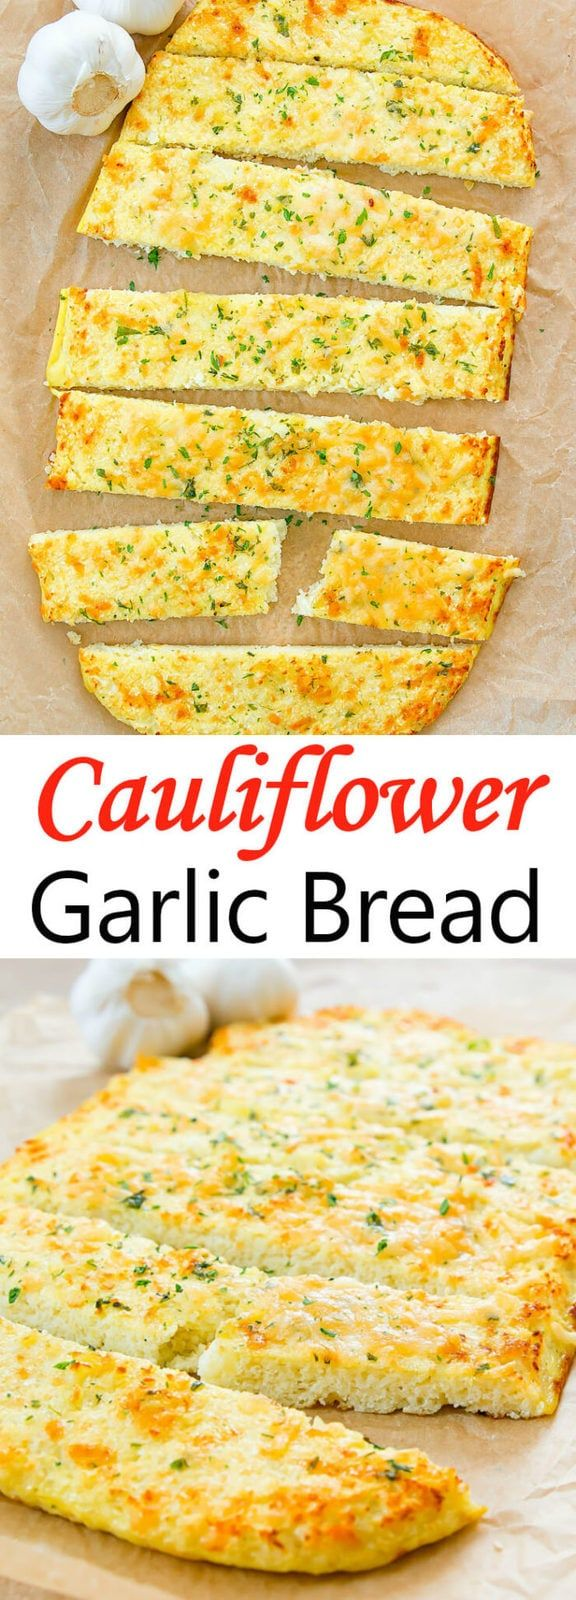 Cauliflower Garlic Bread Recipe Low Carb Cauliflower Garlic